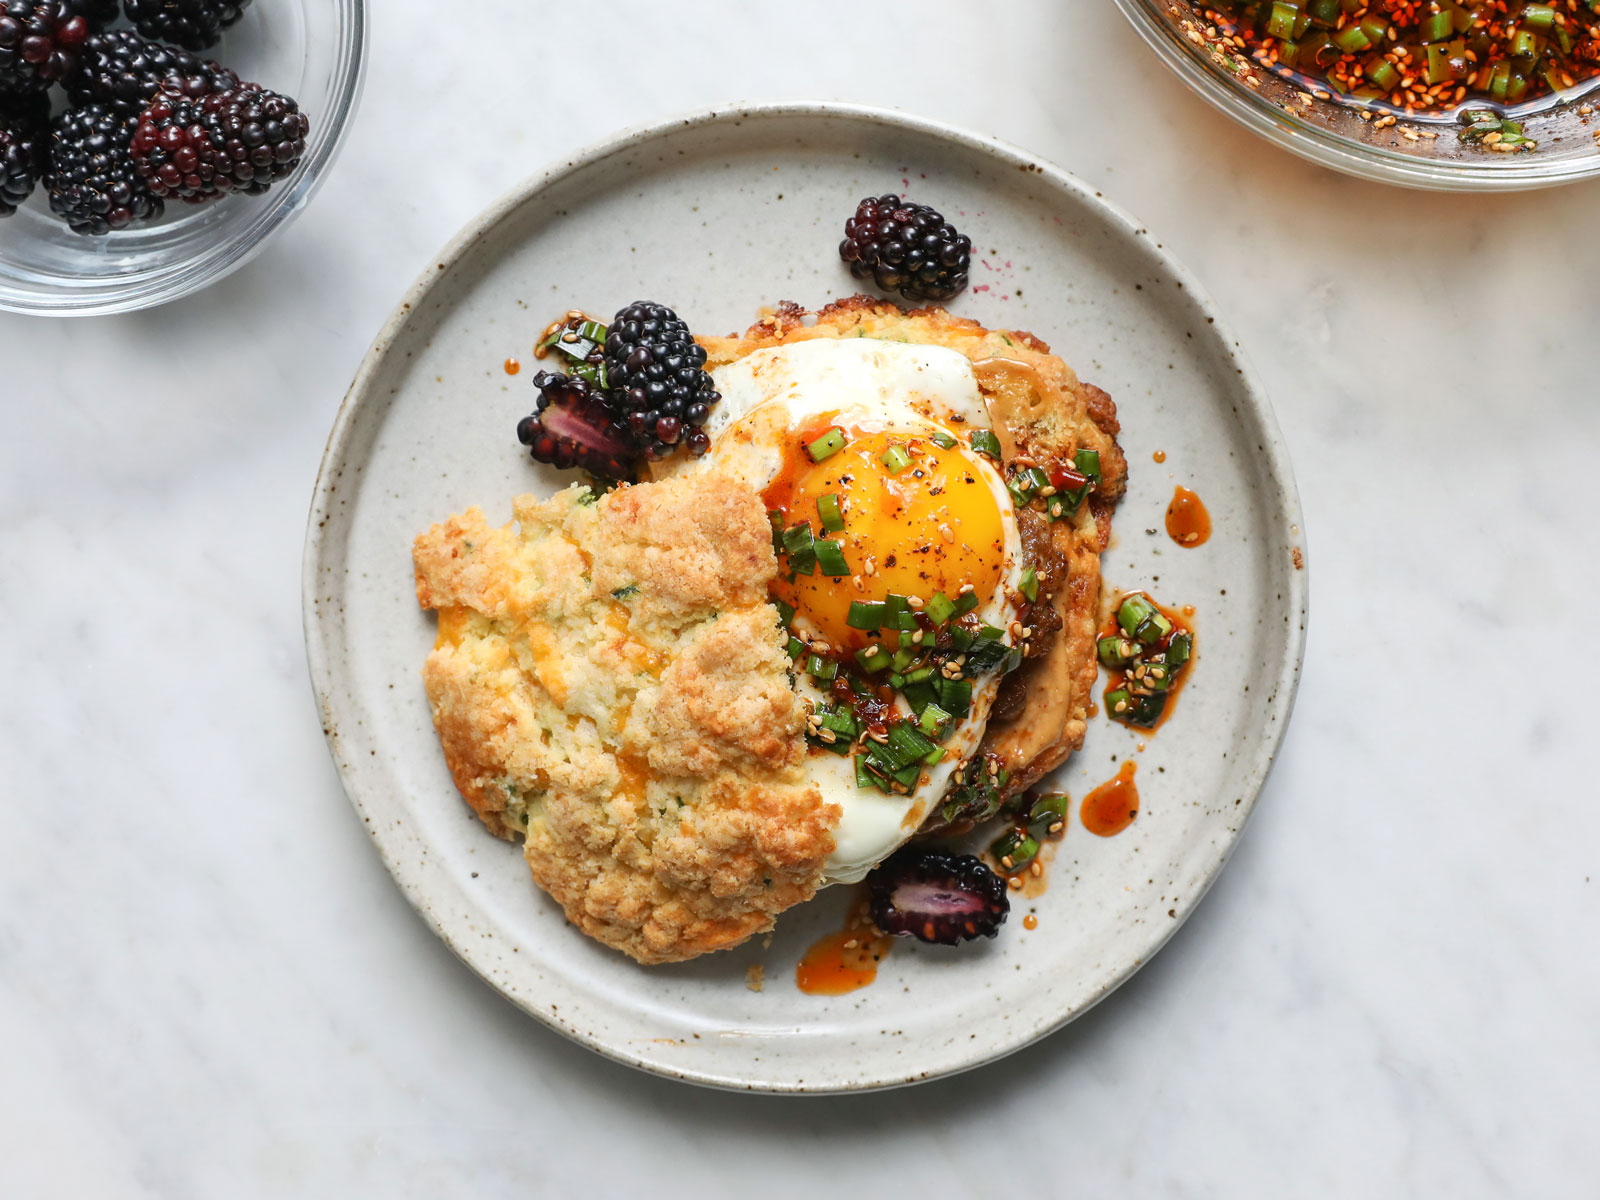 Szechuan-Style Breakfast Biscuits